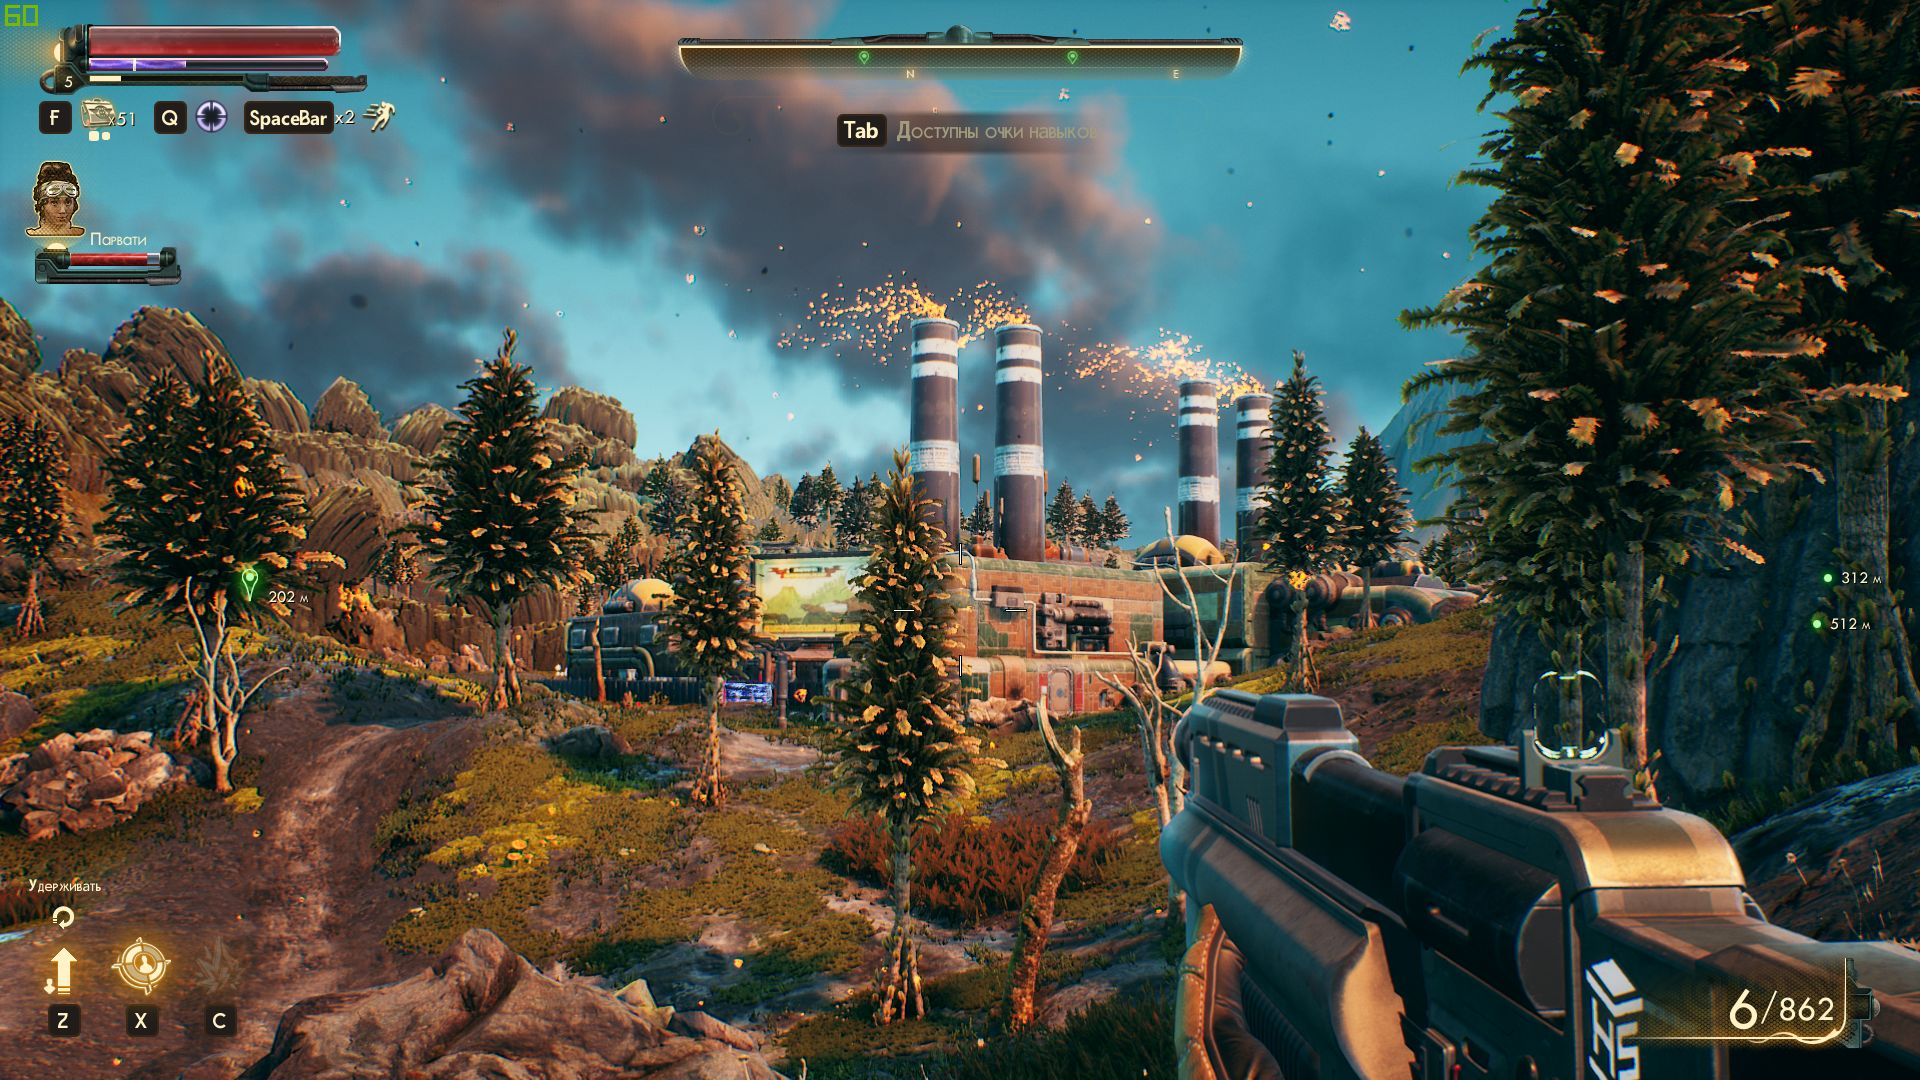 00080.Jpg - Outer Worlds, the